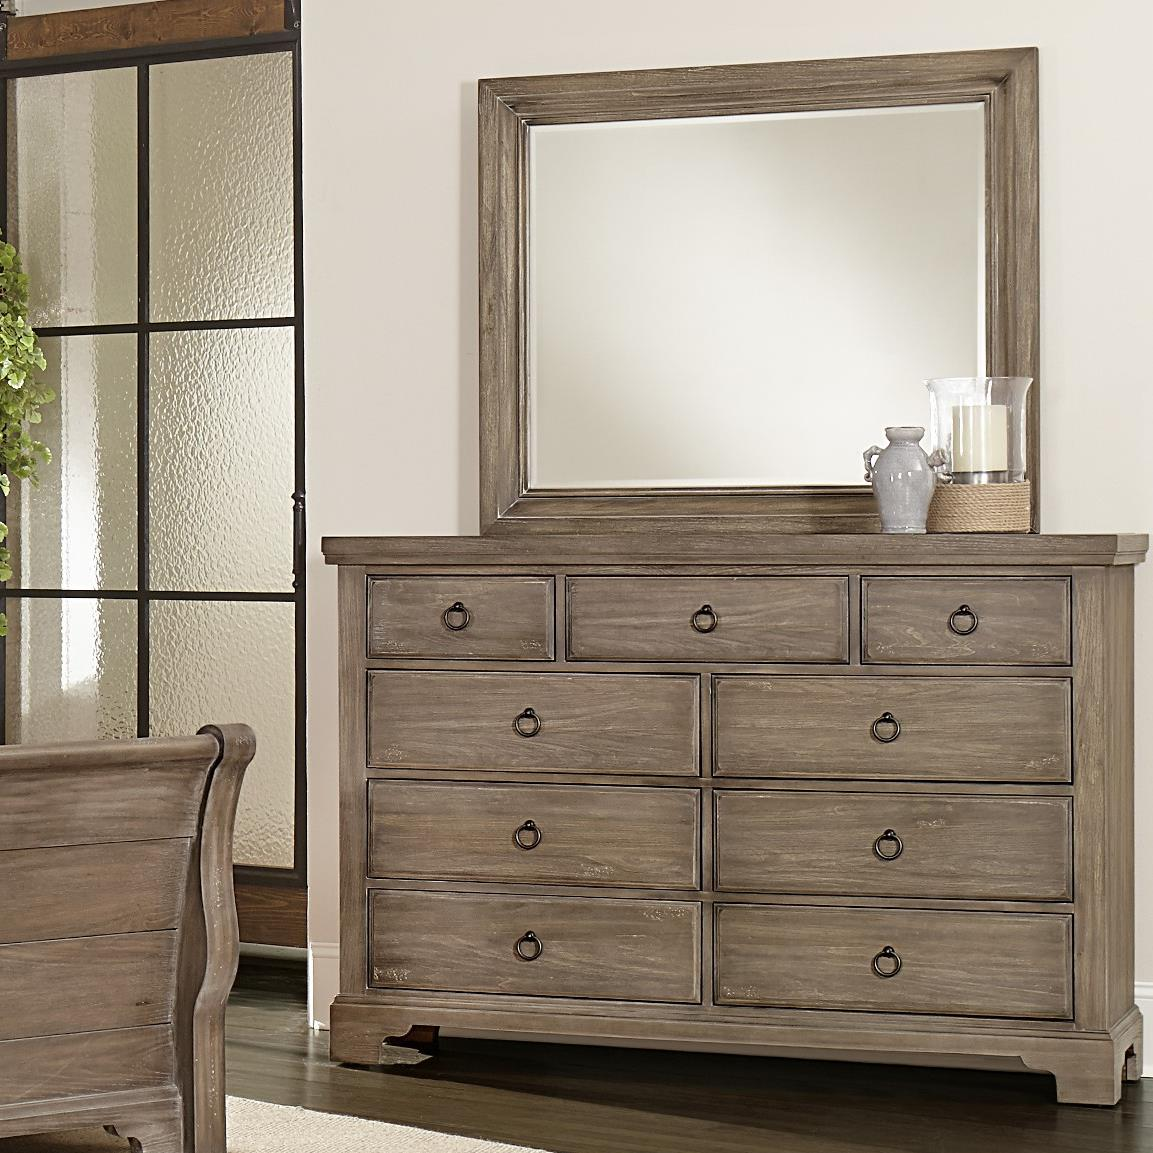 Vaughan Bassett Whiskey Barrel Chesser - 9 Drawers & Landscape Mirror - Item Number: 814-003+446